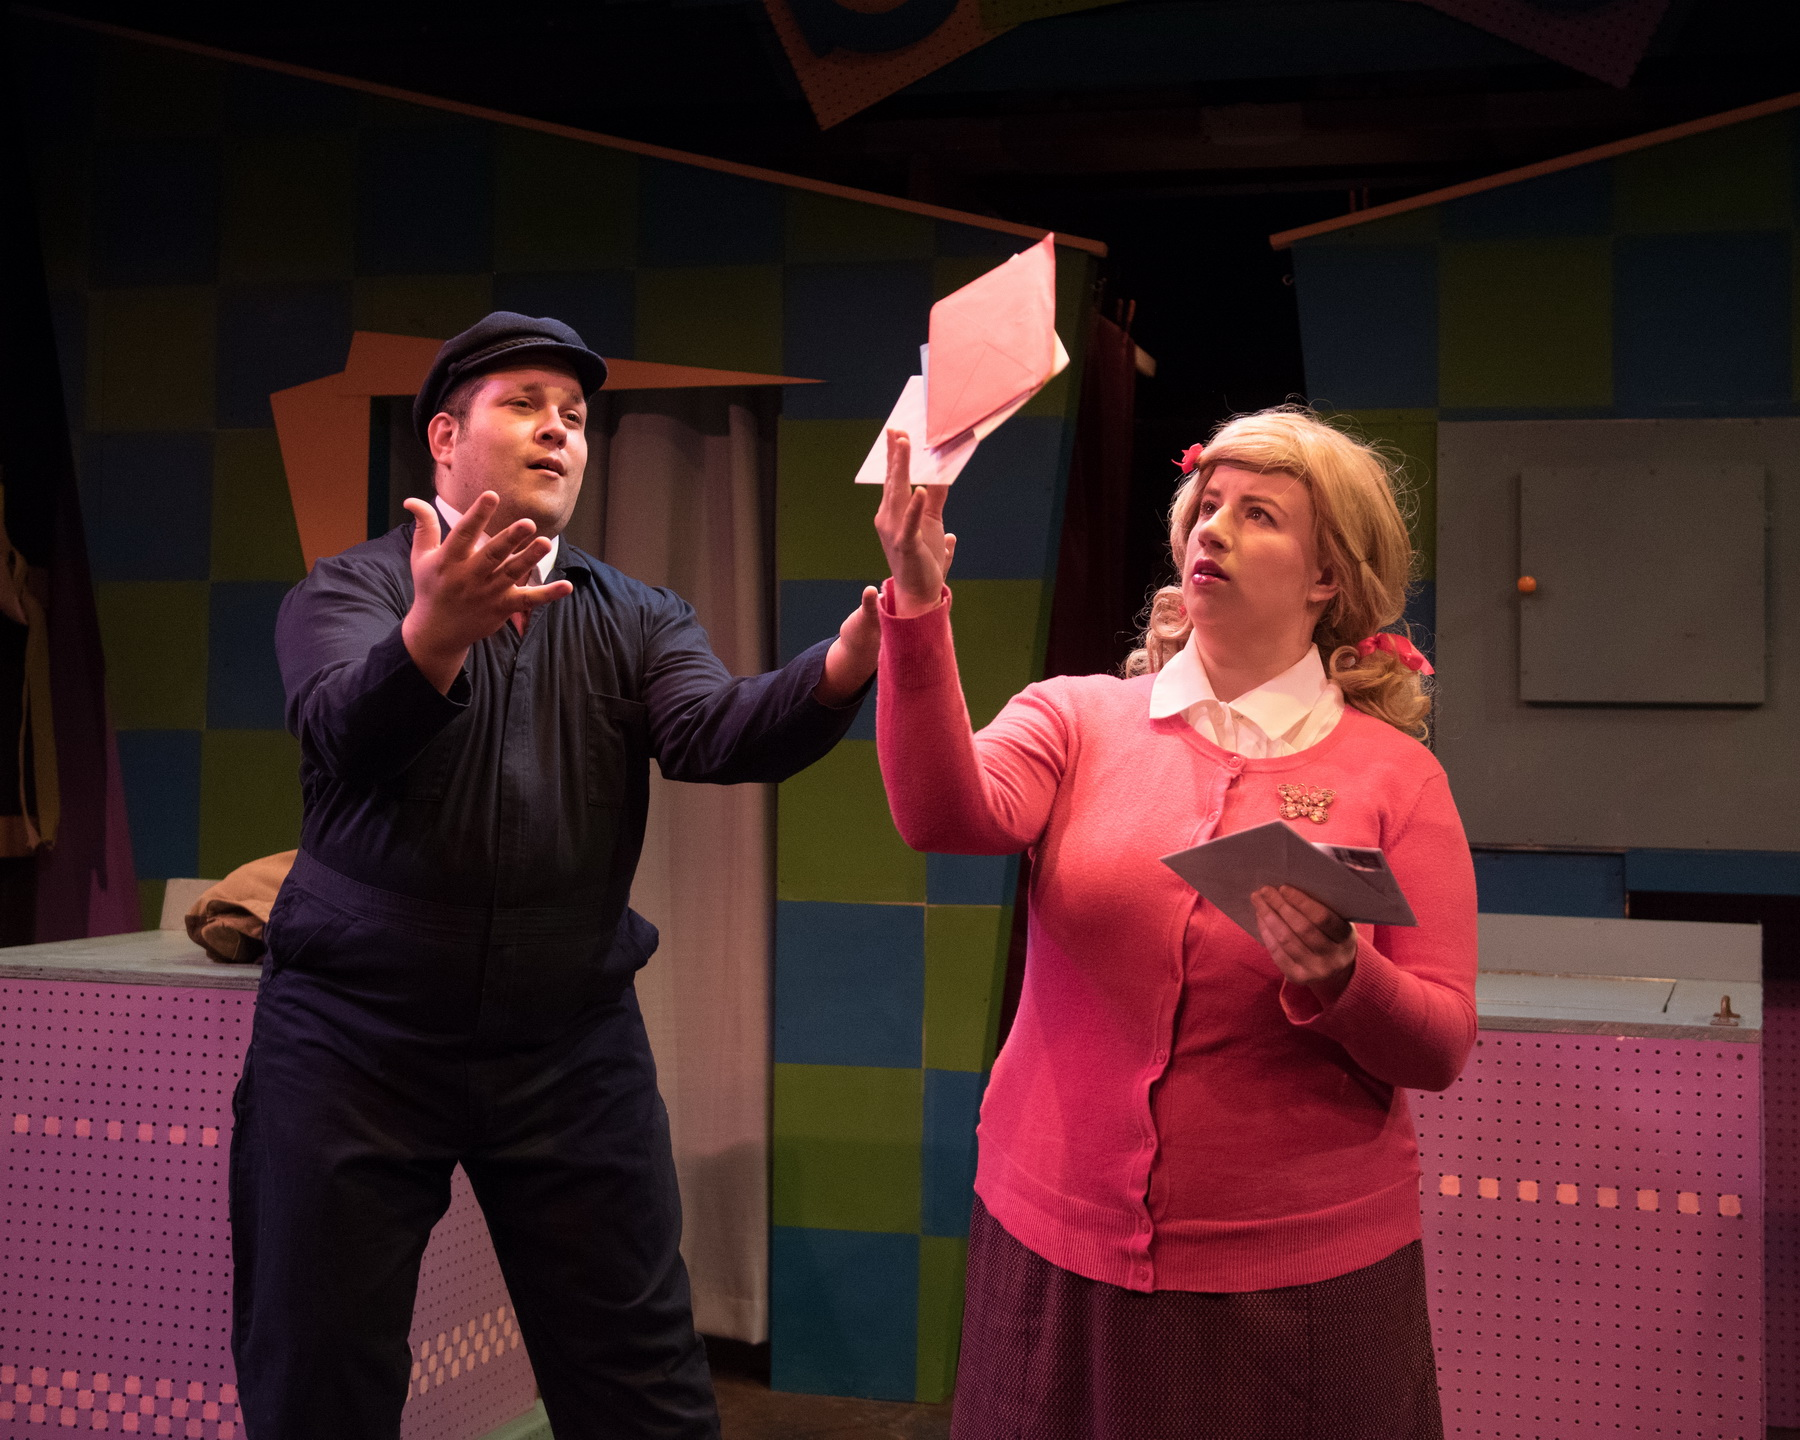 Matt Cuffari as Mr. Postman and Ellie St. Cyr as Cindy